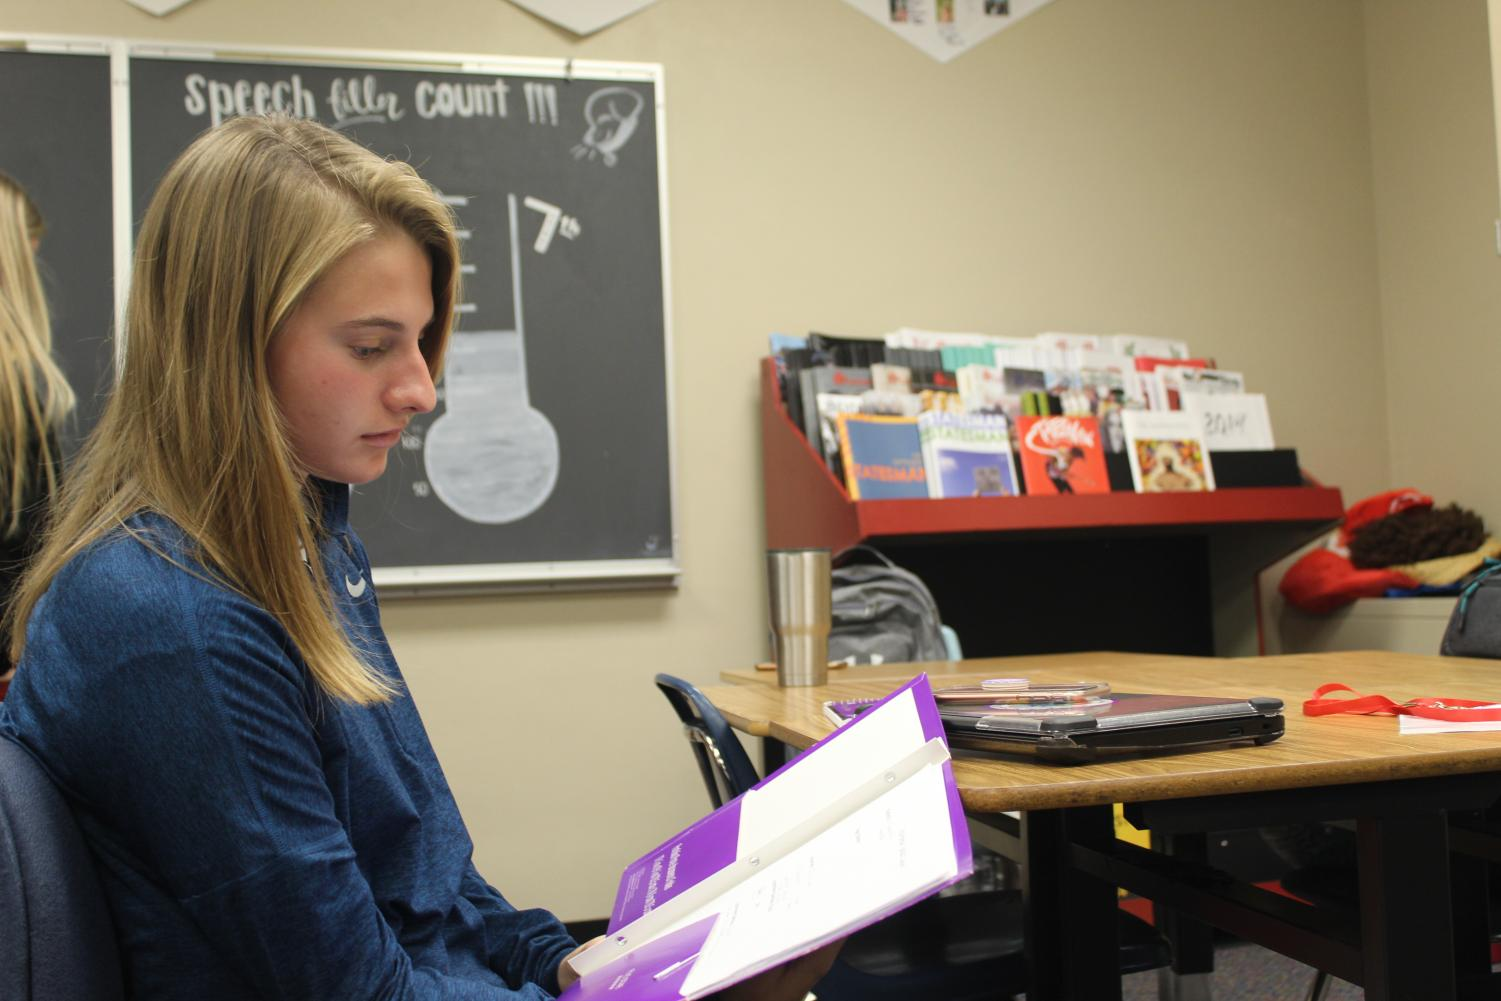 For juniors, the year is much harder considering the amount of homework given coupled with a lack of motivation. (Pictured: Madeleine Kemper)